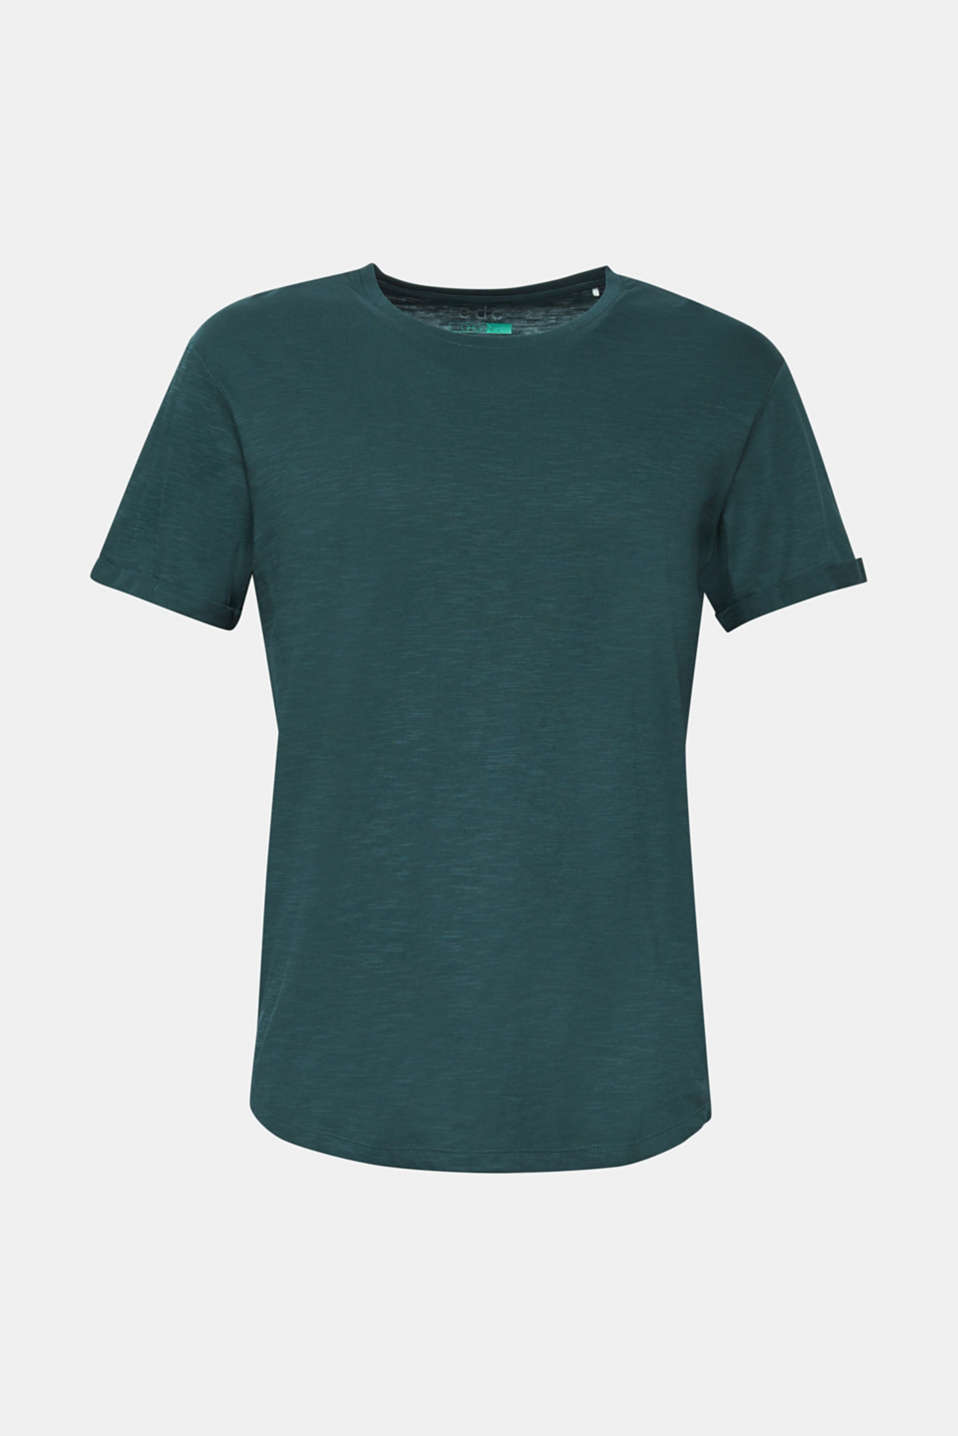 Slub jersey T-shirt in 100% cotton, TEAL BLUE, detail image number 6